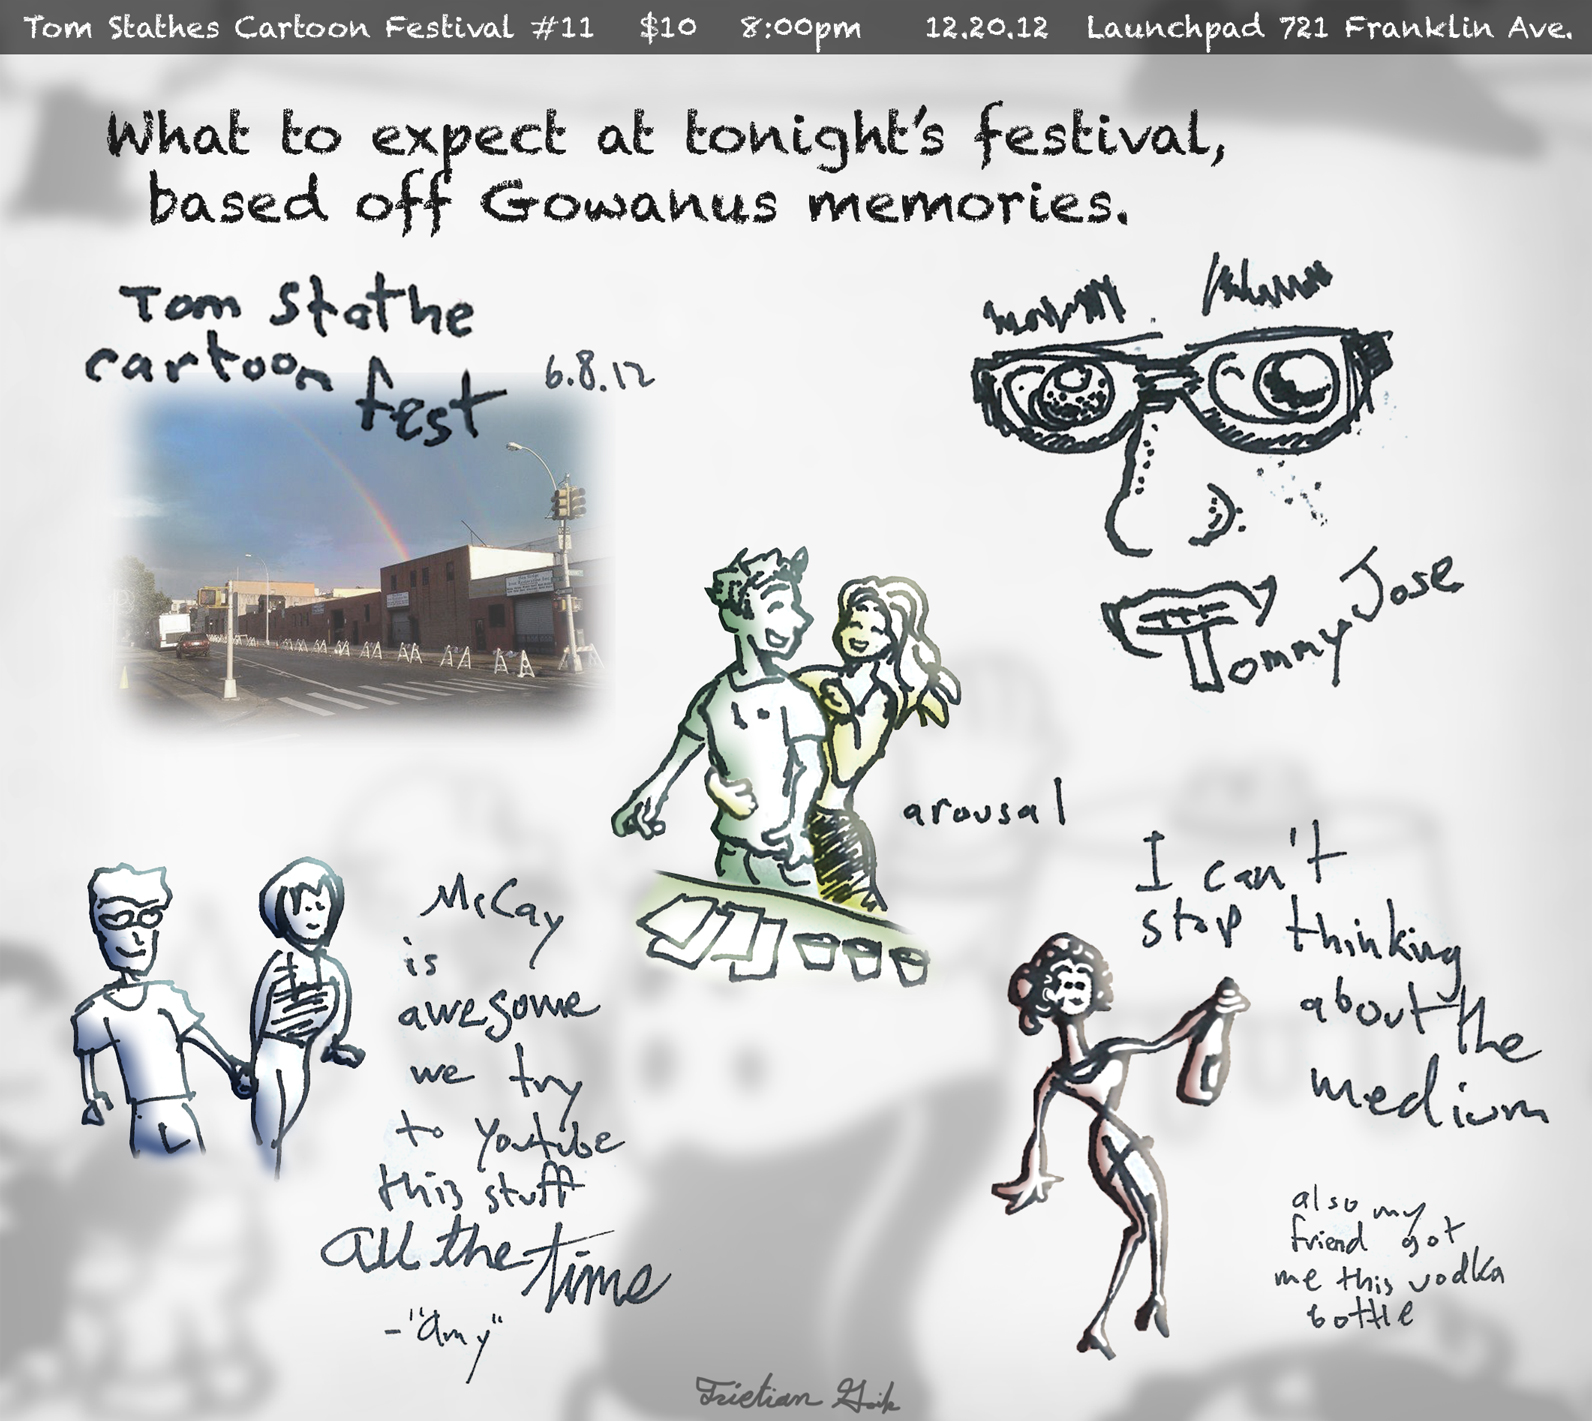 Tom Stathes' Cartoon Festival